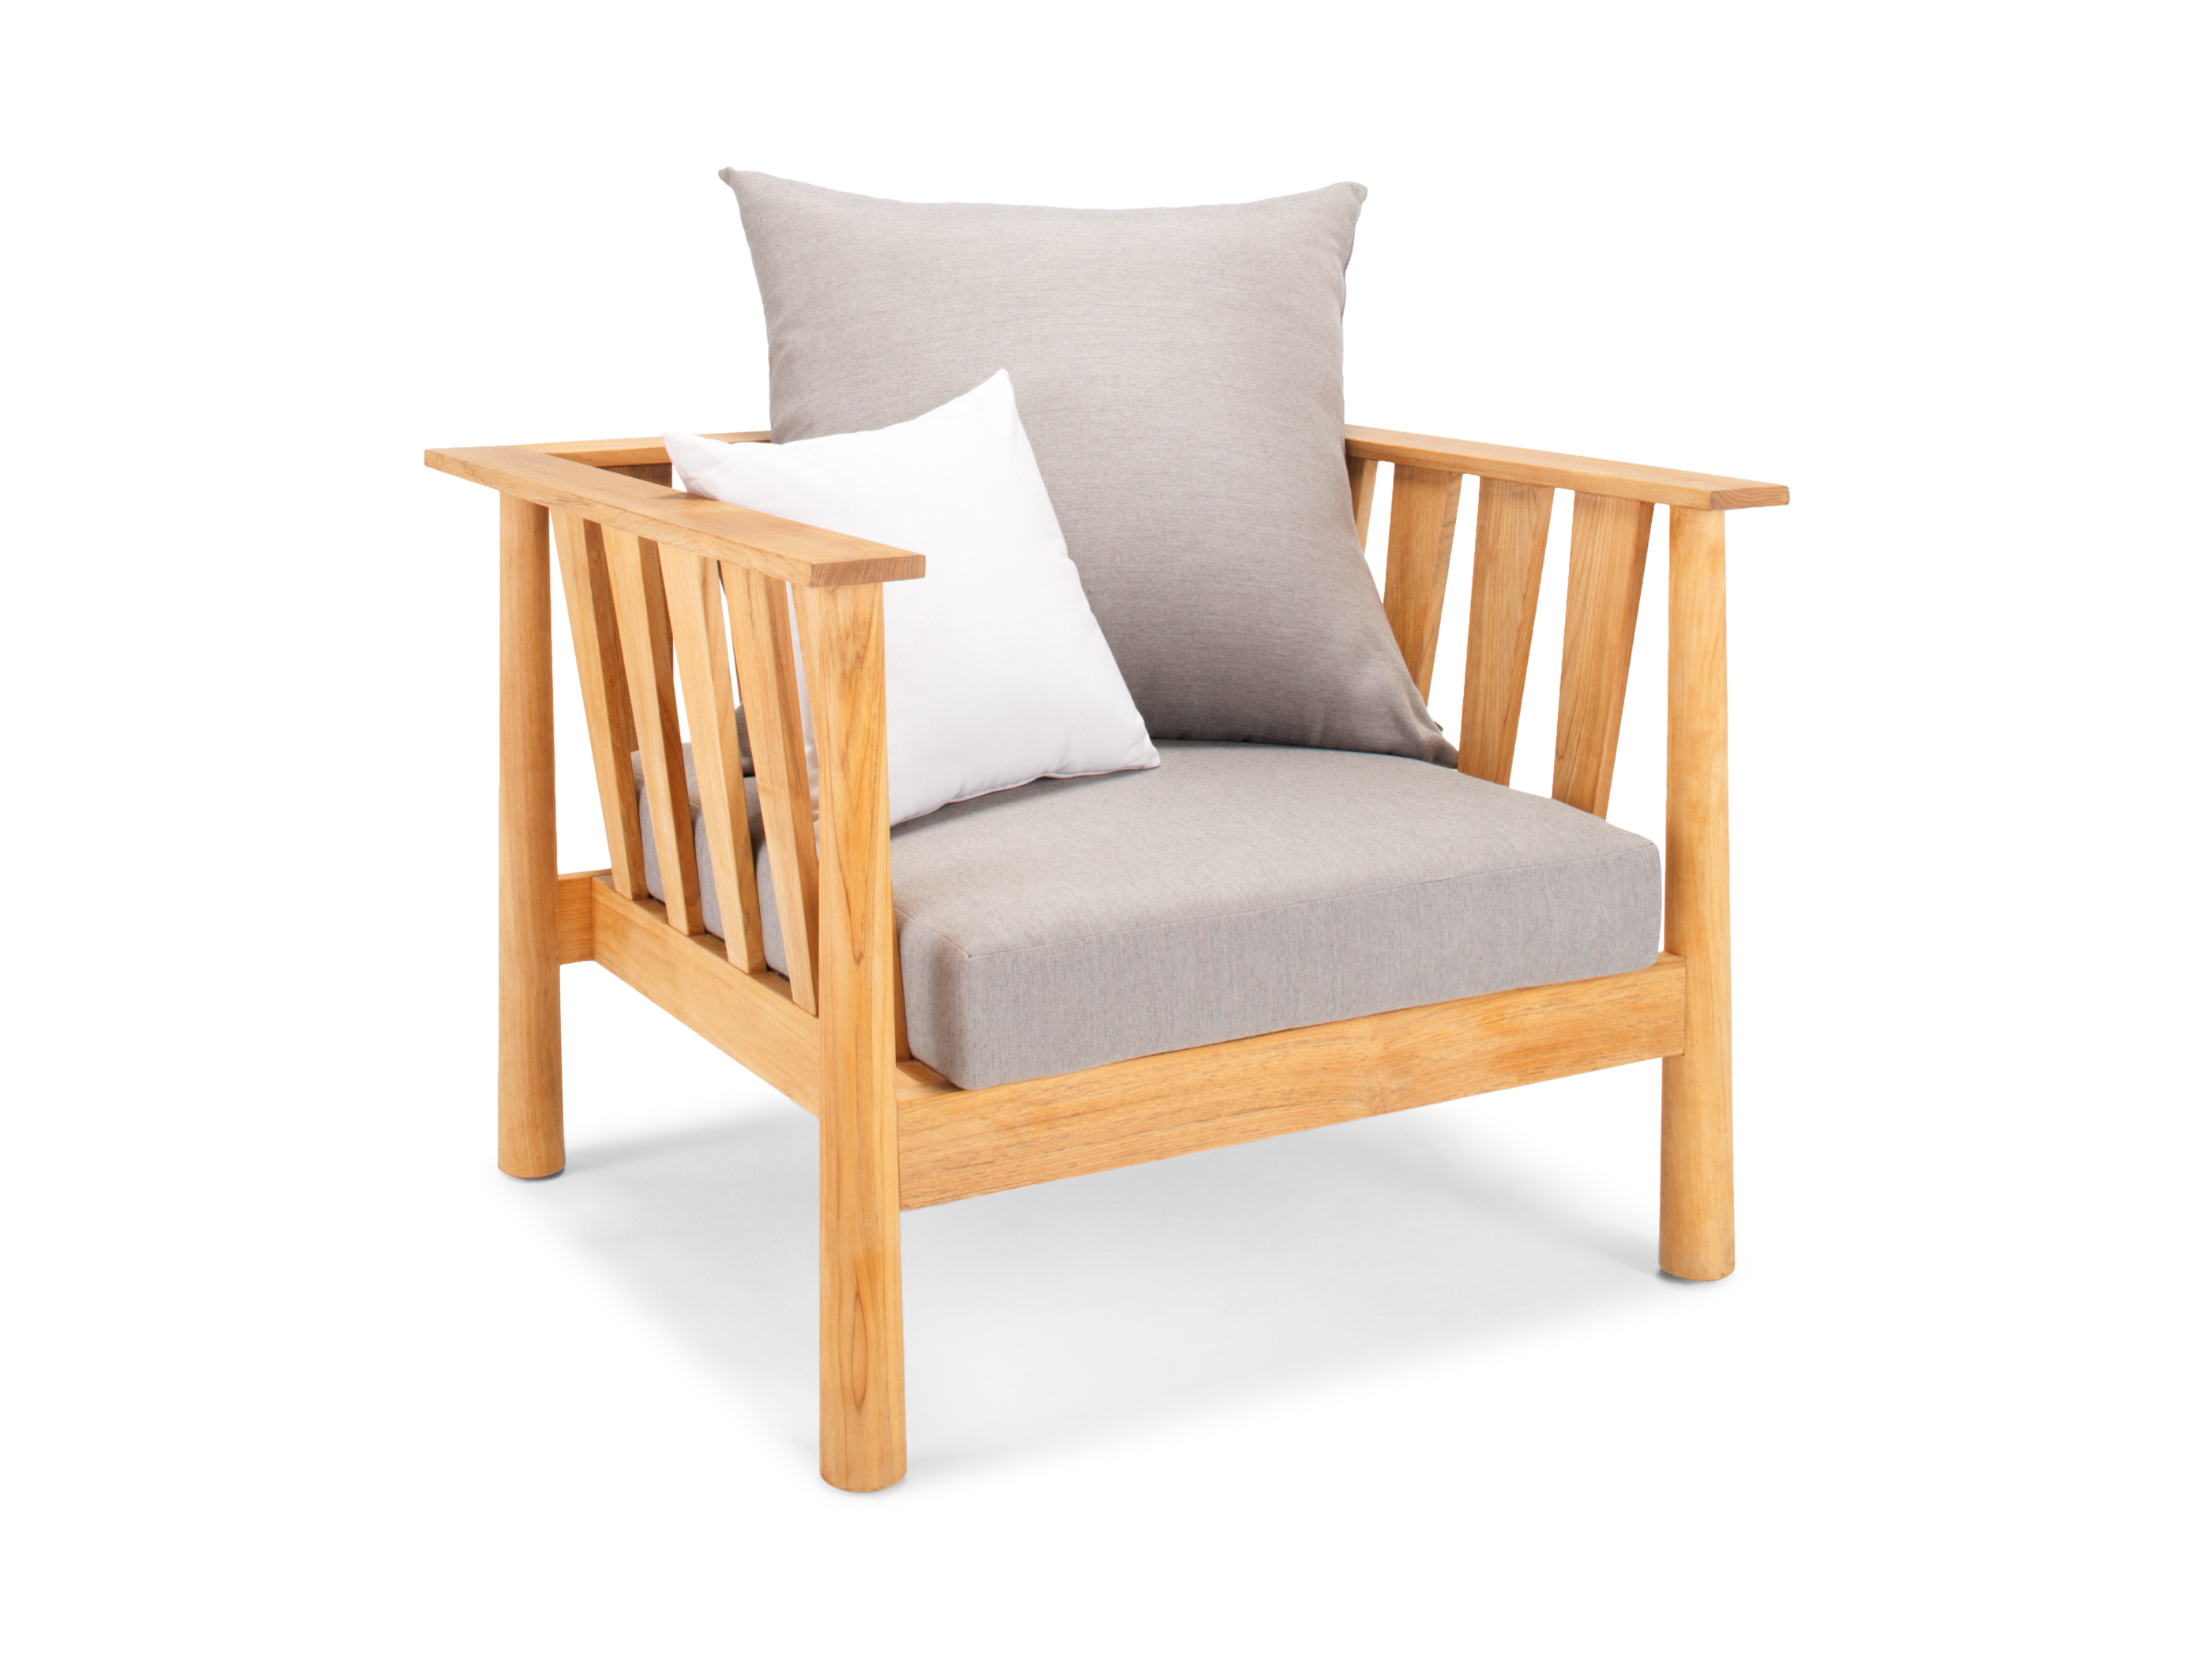 ecooutdoor furn cupboard chair de furniture by lounge hutt outdoor eco designer lounges products